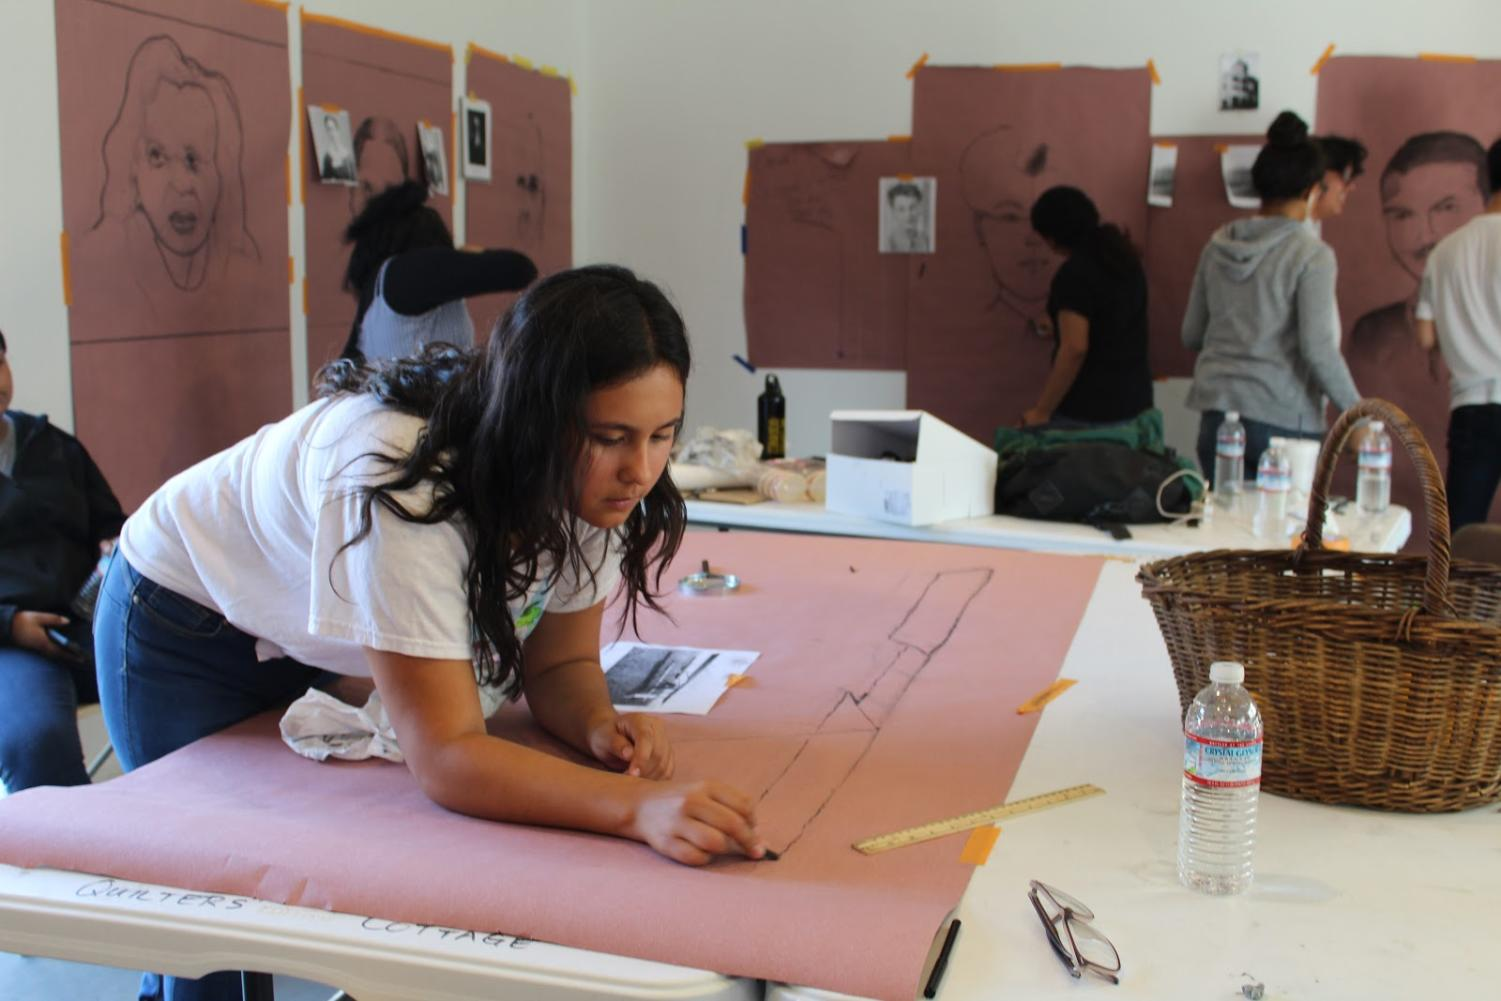 Katrina Mena, a sophomore at Godinez Fundamental High School, working on her perspective drawings for the mural on Tuesday, Sept. 25, 2018.